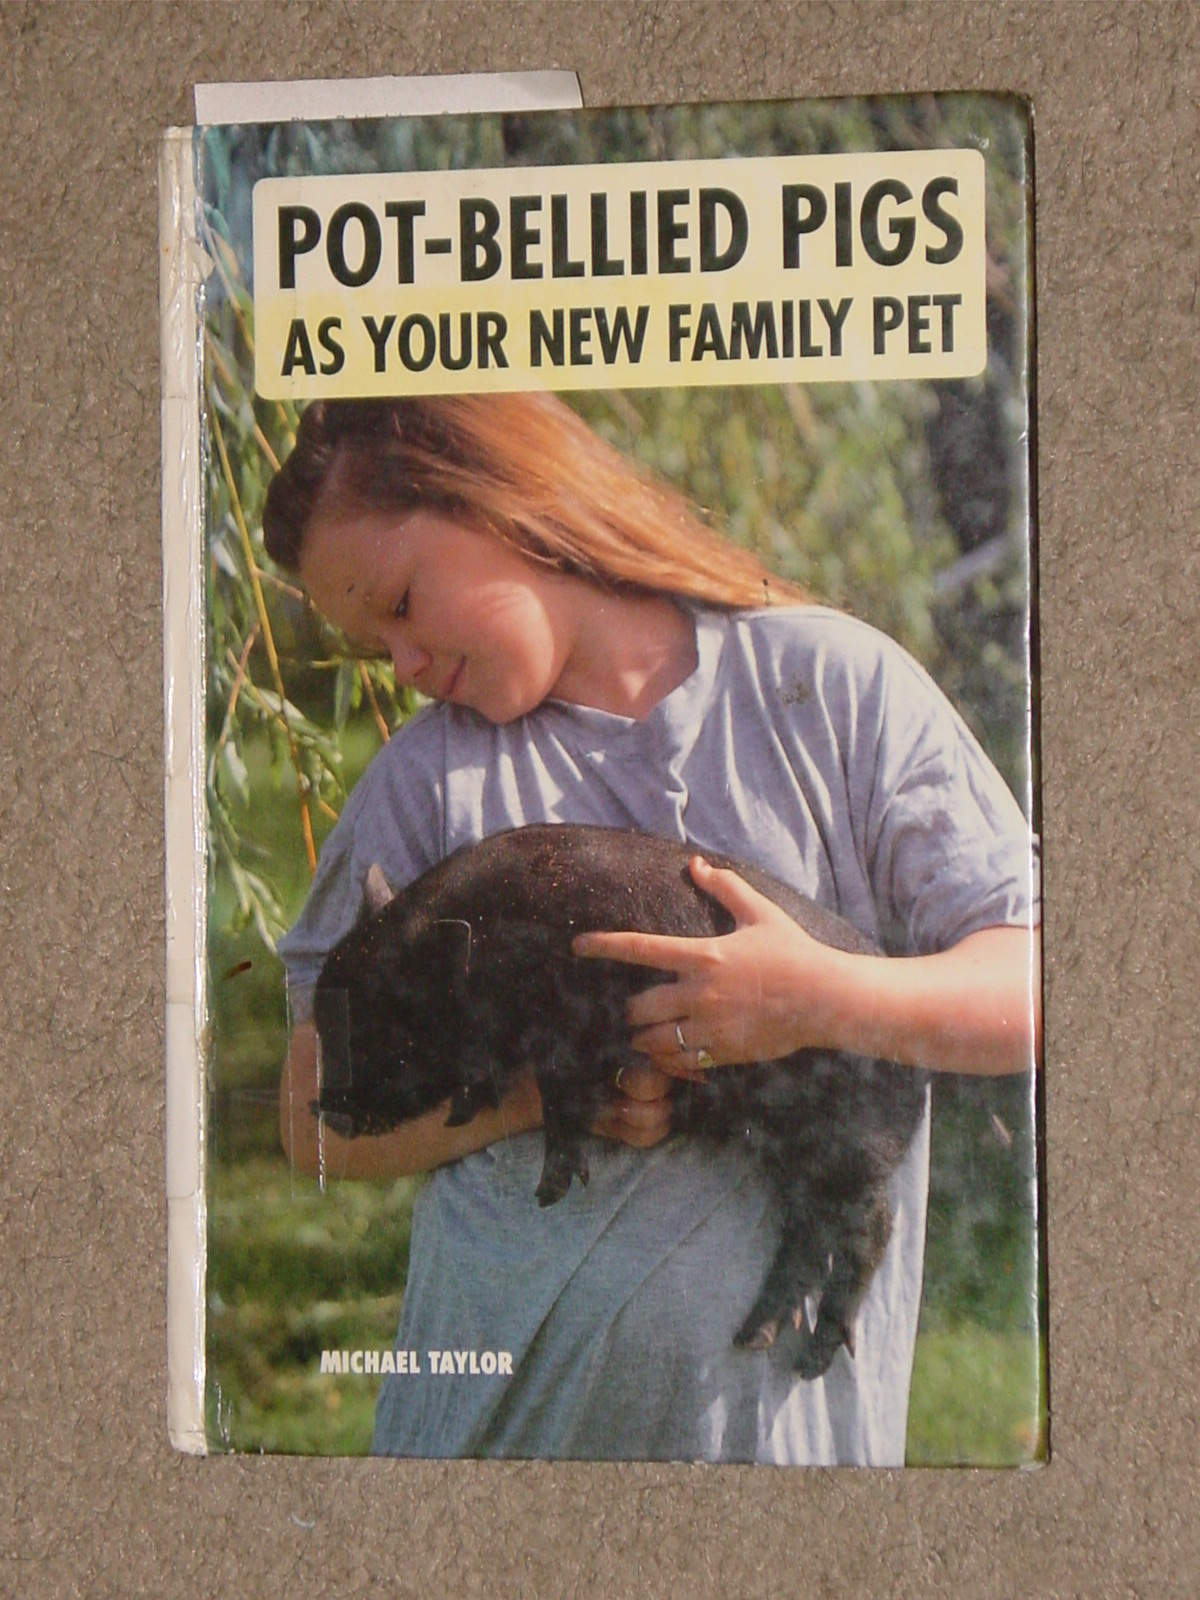 41-8743. Pot-Bellied Pigs As Your New Family Pet.